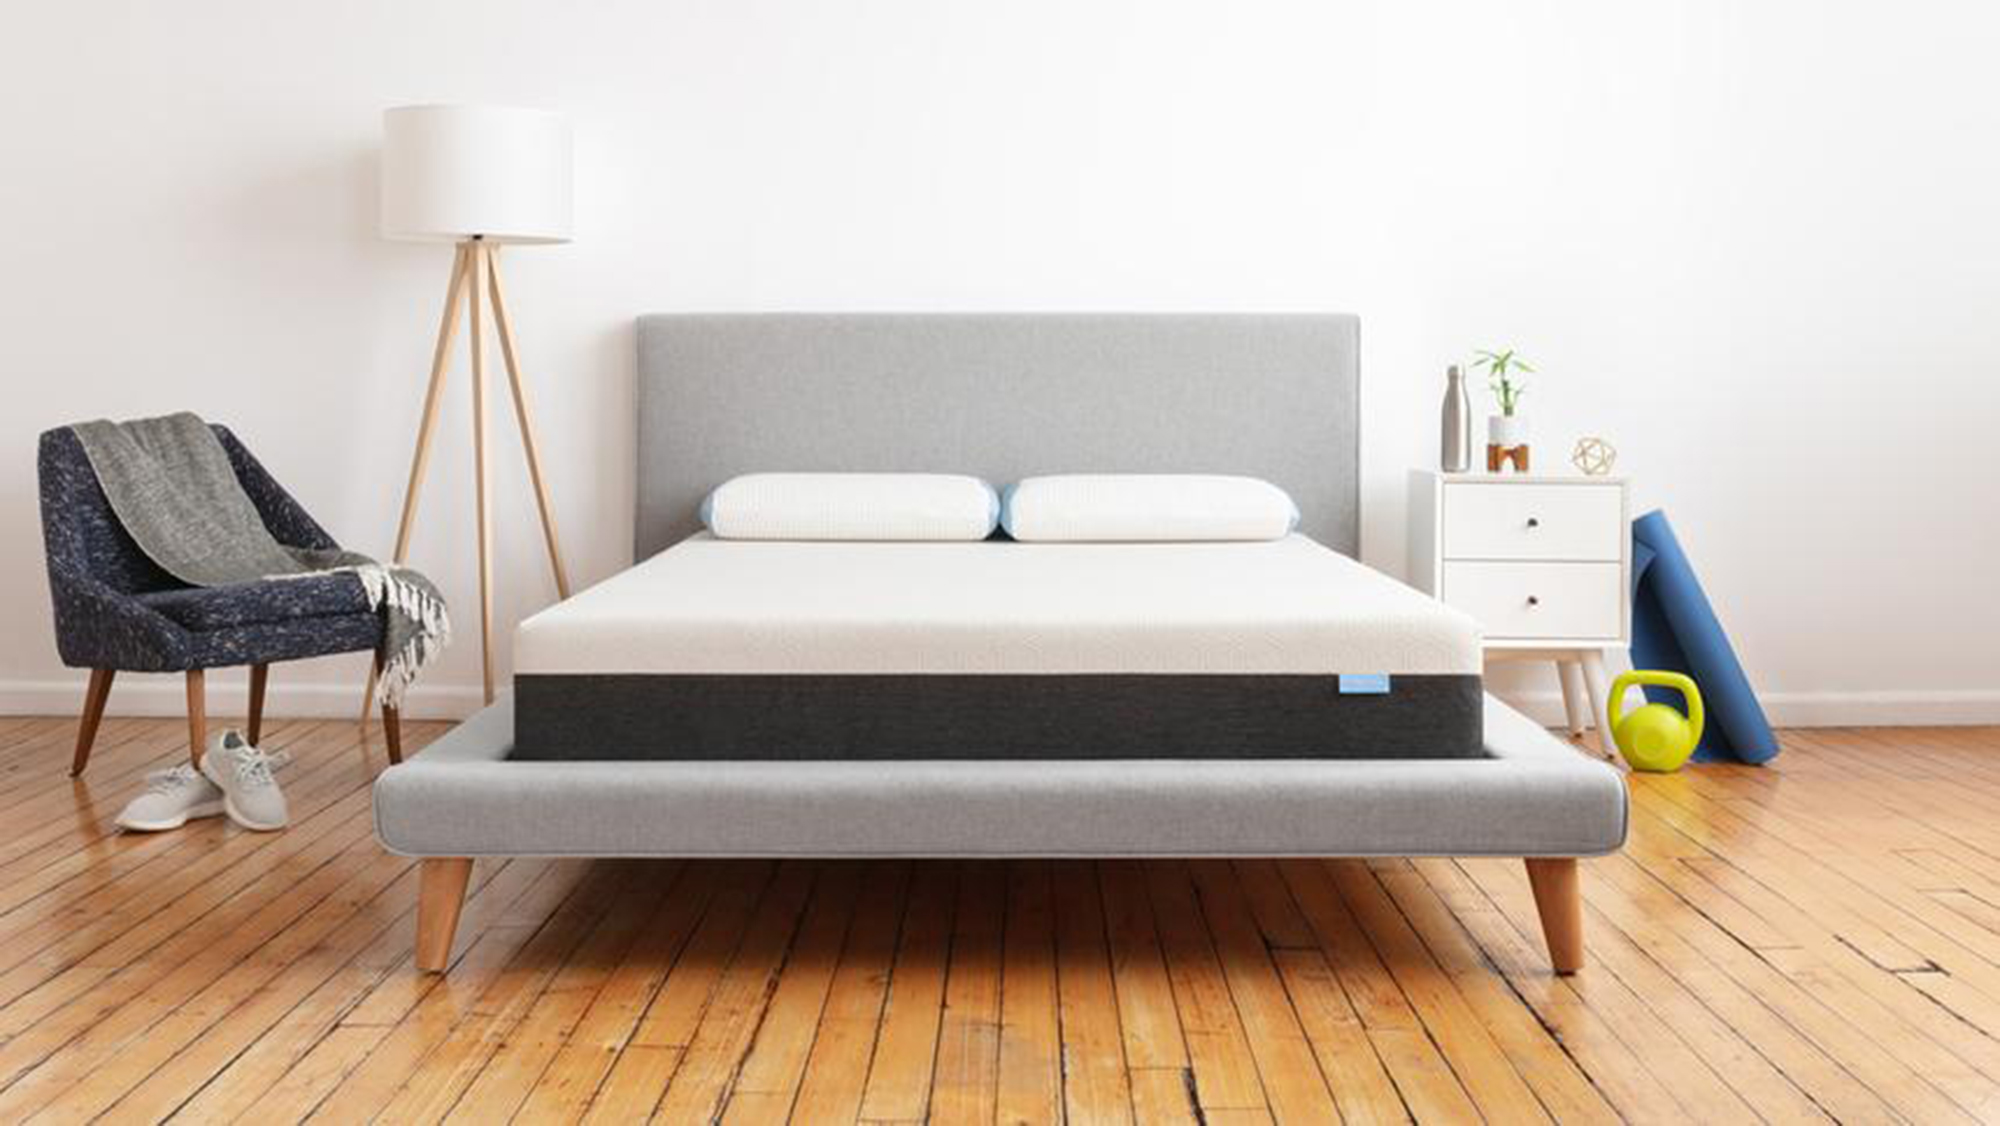 How Much Does an Adjustable Beds Cost? – You Can Find Great Deals on Any Brand of Bed Online